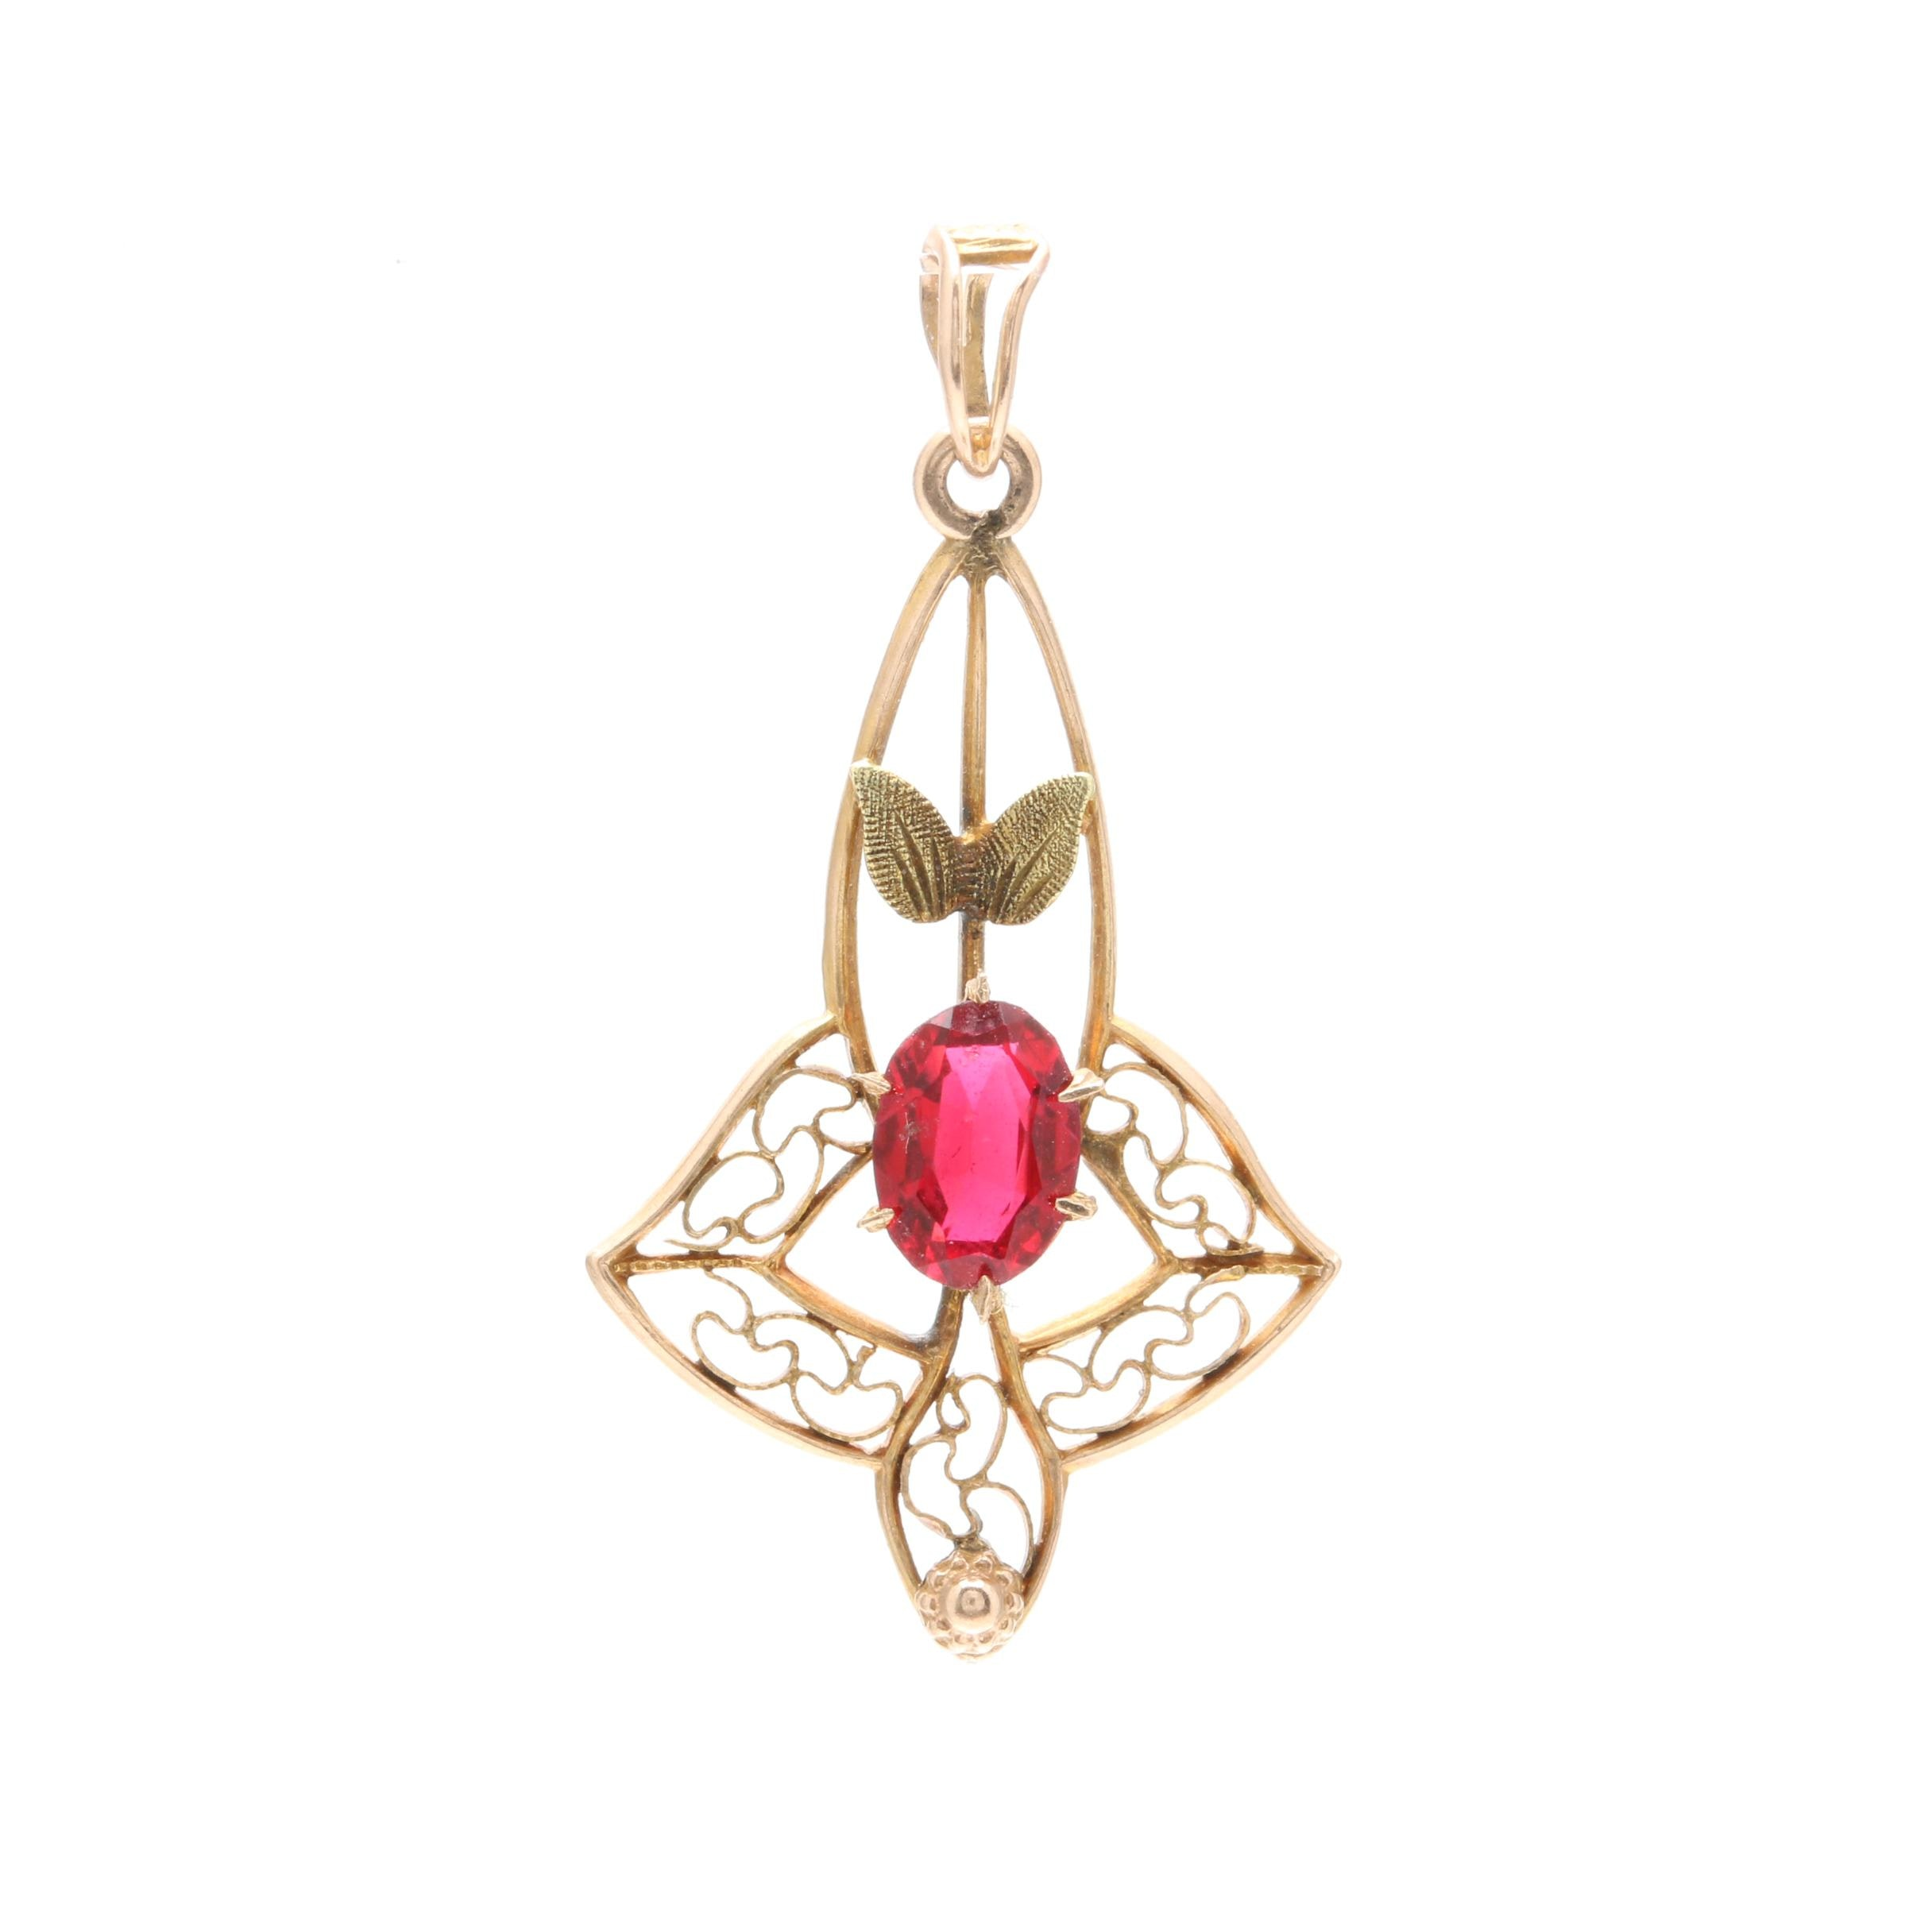 Arts and Crafts 10K Yellow Gold Glass Lavalier Pendant